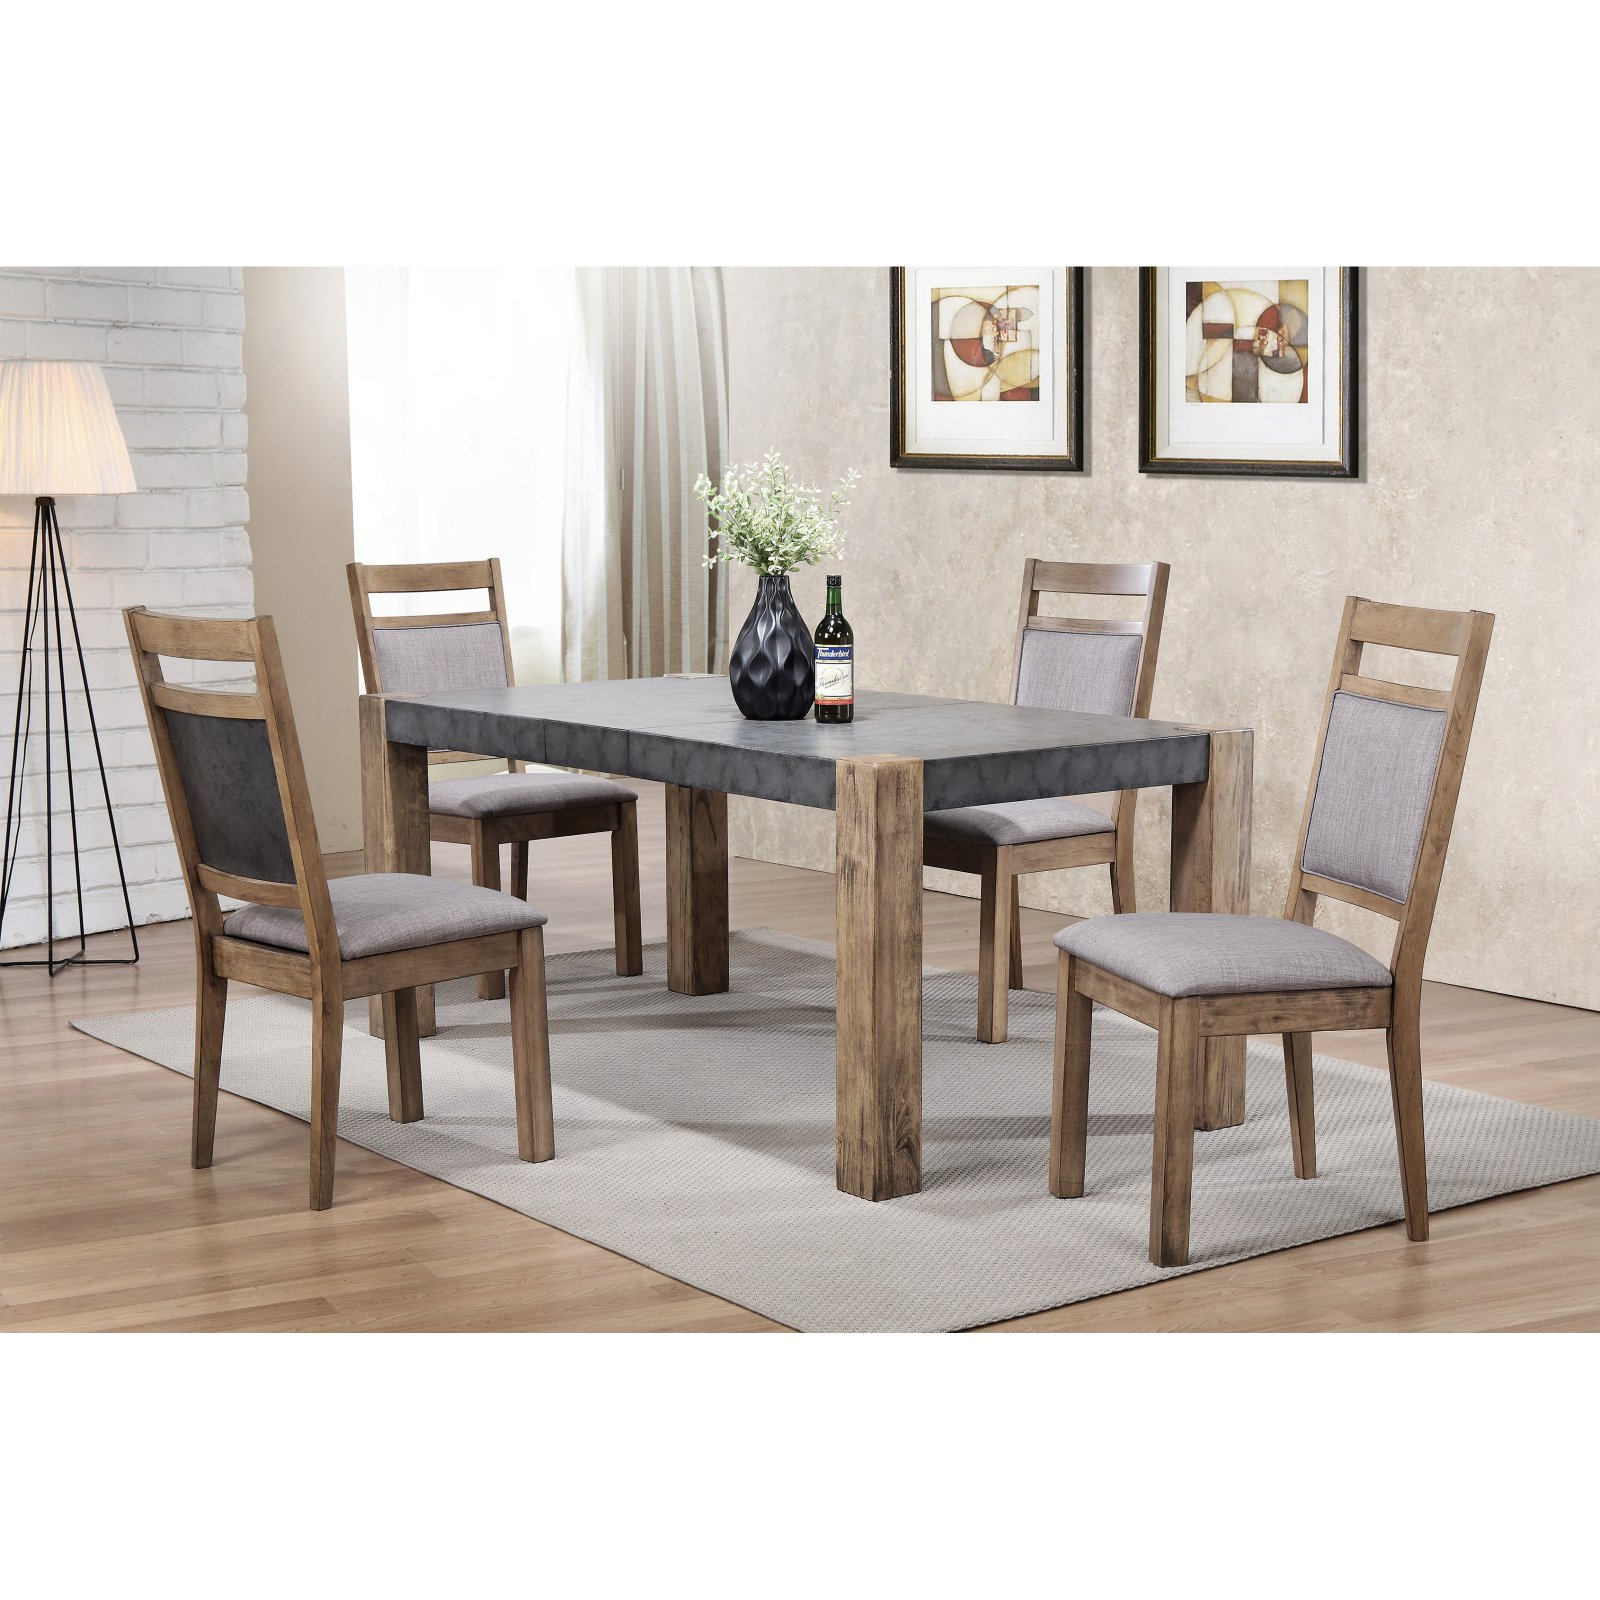 Roundhill Furniture Costabella 5 Piece Two Tone Butterfly Leaf Dining Table  Set With Optional Server